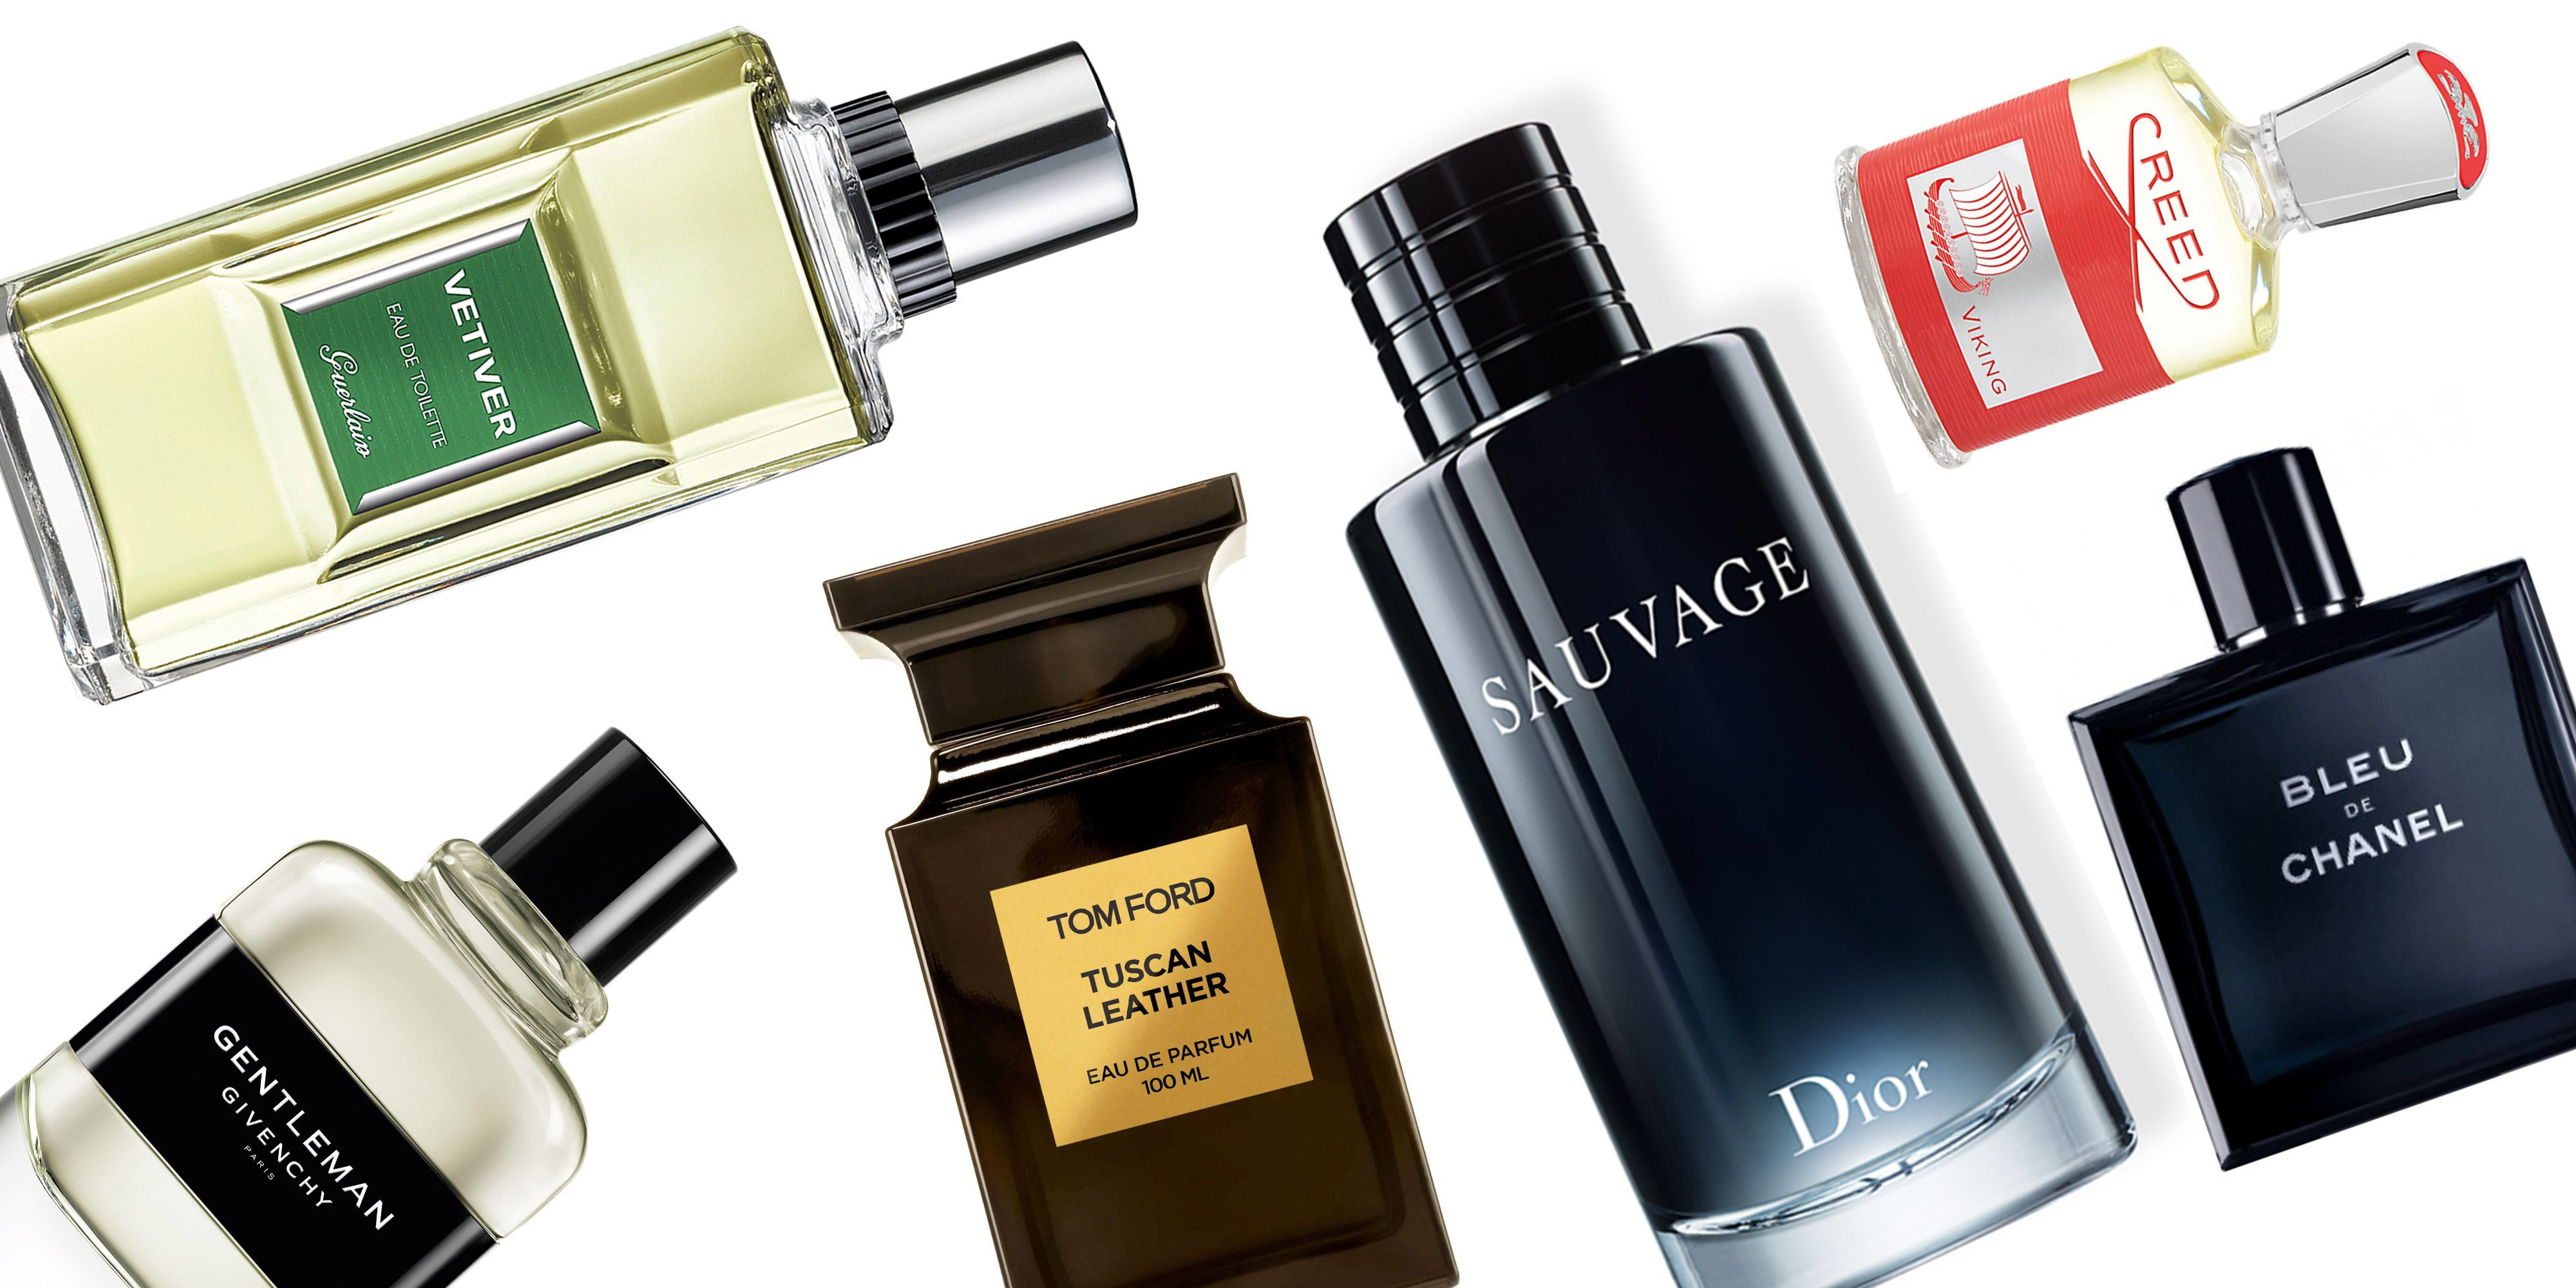 15 of the best fragrances for men